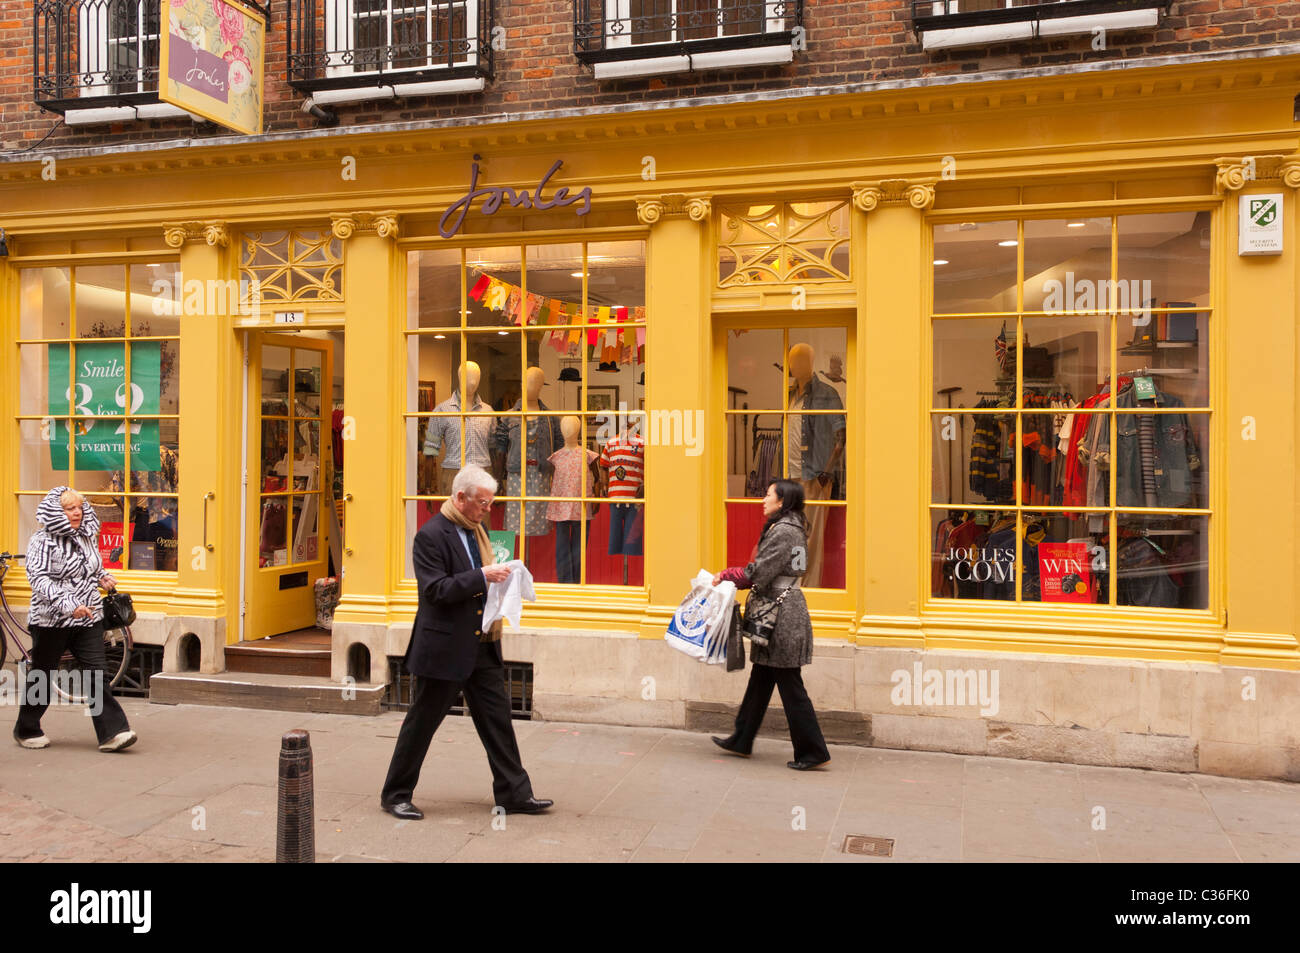 Uk clothes stores. F F Clothing at Tesco rolls out Nedap RFID technology